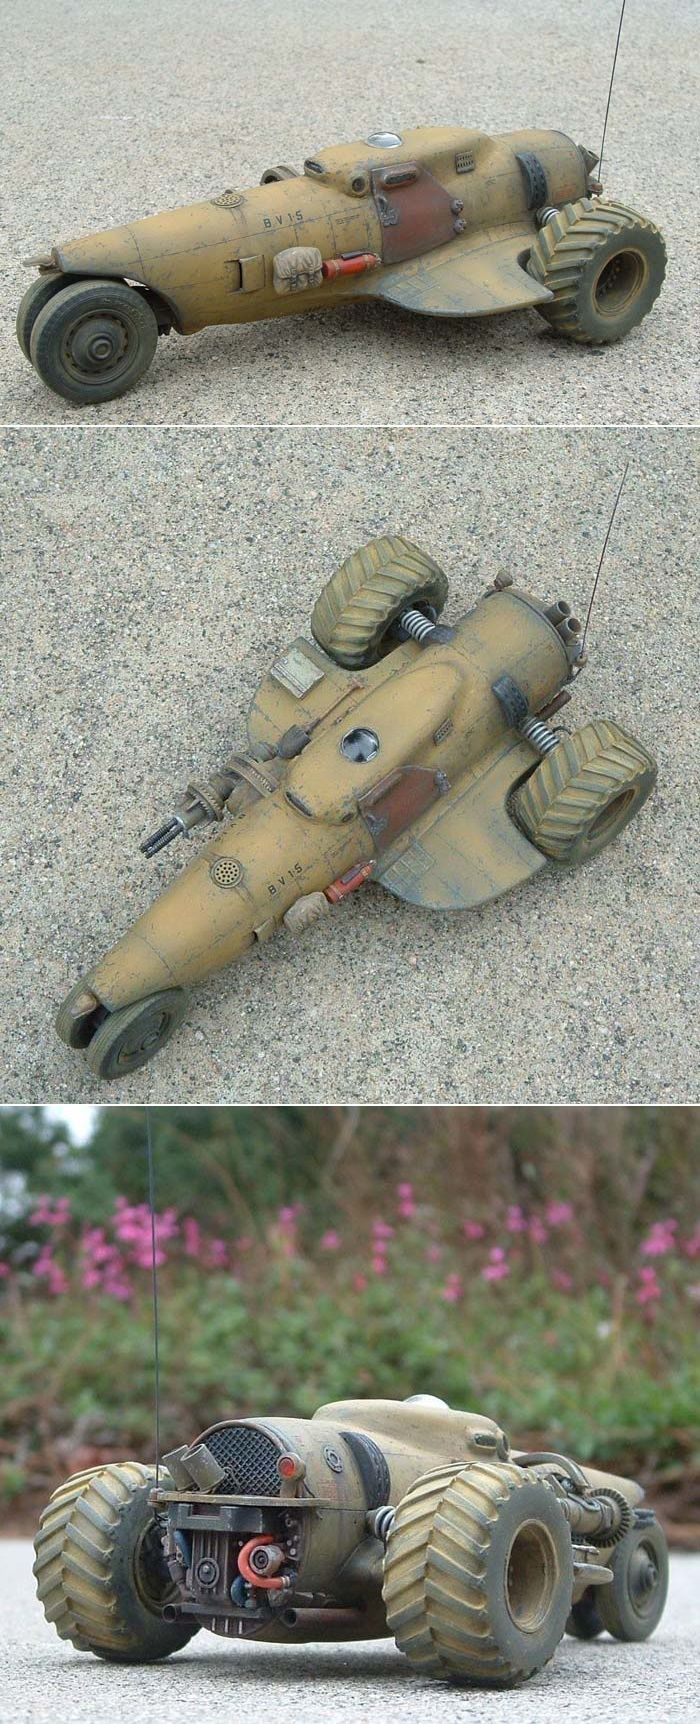 1/48 Scratch Built vehicle based on a P-47 fuselage